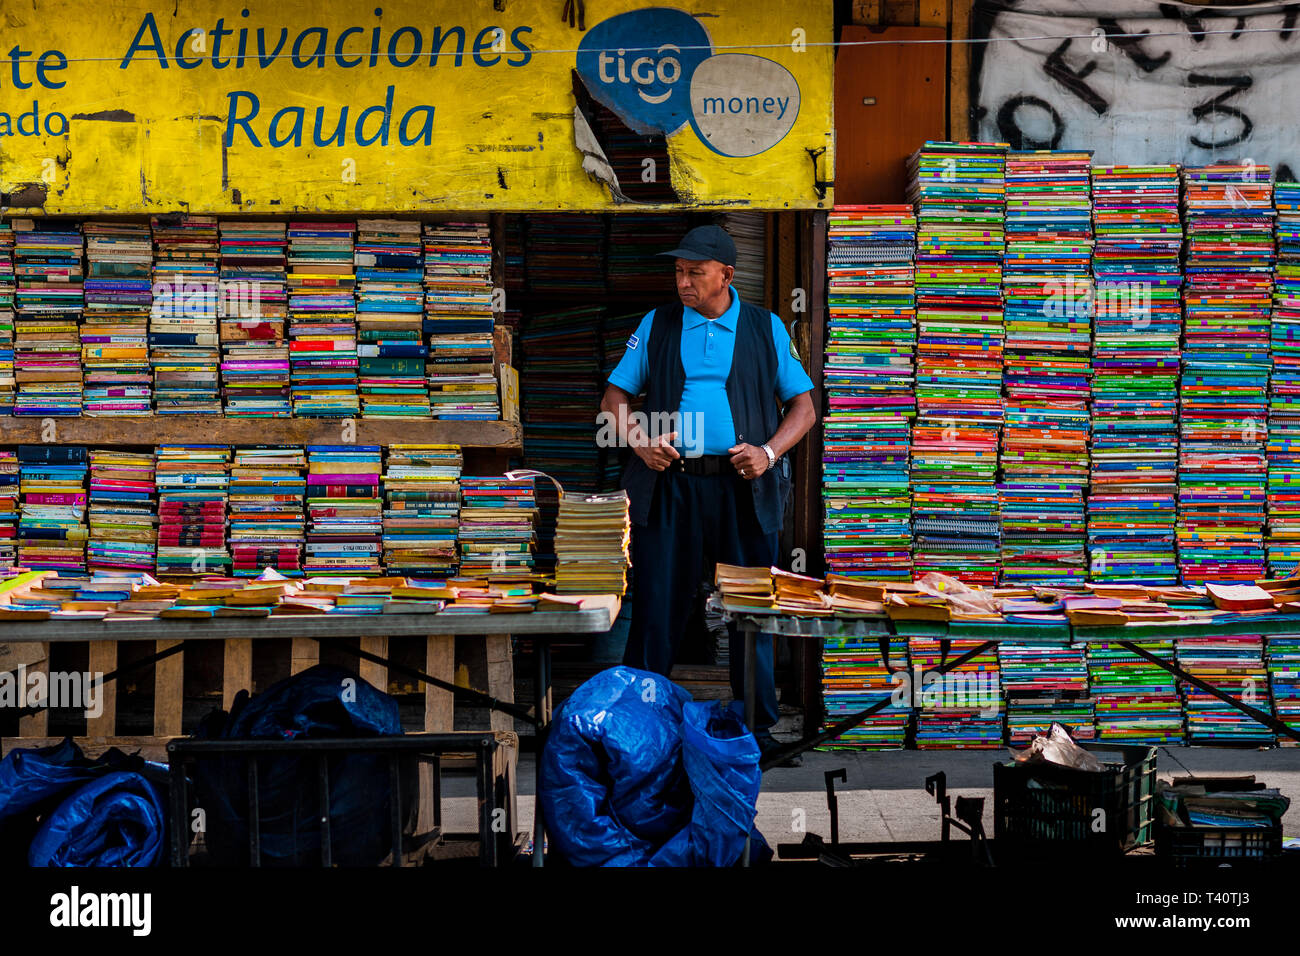 A Salvadoran bookseller stands in front of piles of used books stacked on the street in a secondhand bookshop in San Salvador, El Salvador. - Stock Image